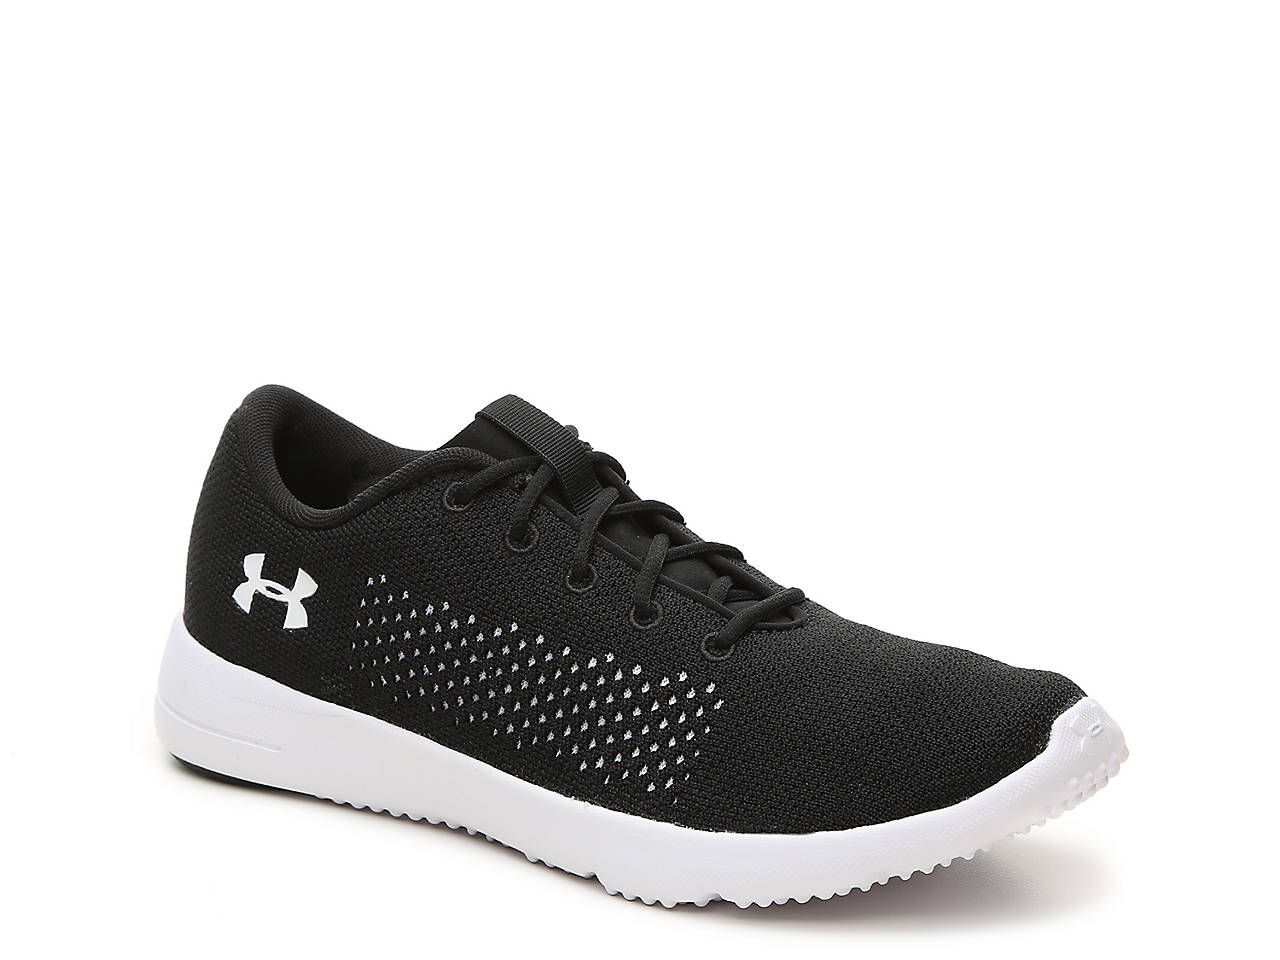 928e01634bcf8c Under Armour Rapid Lightweight Running Shoe - Women's Women's Shoes ...